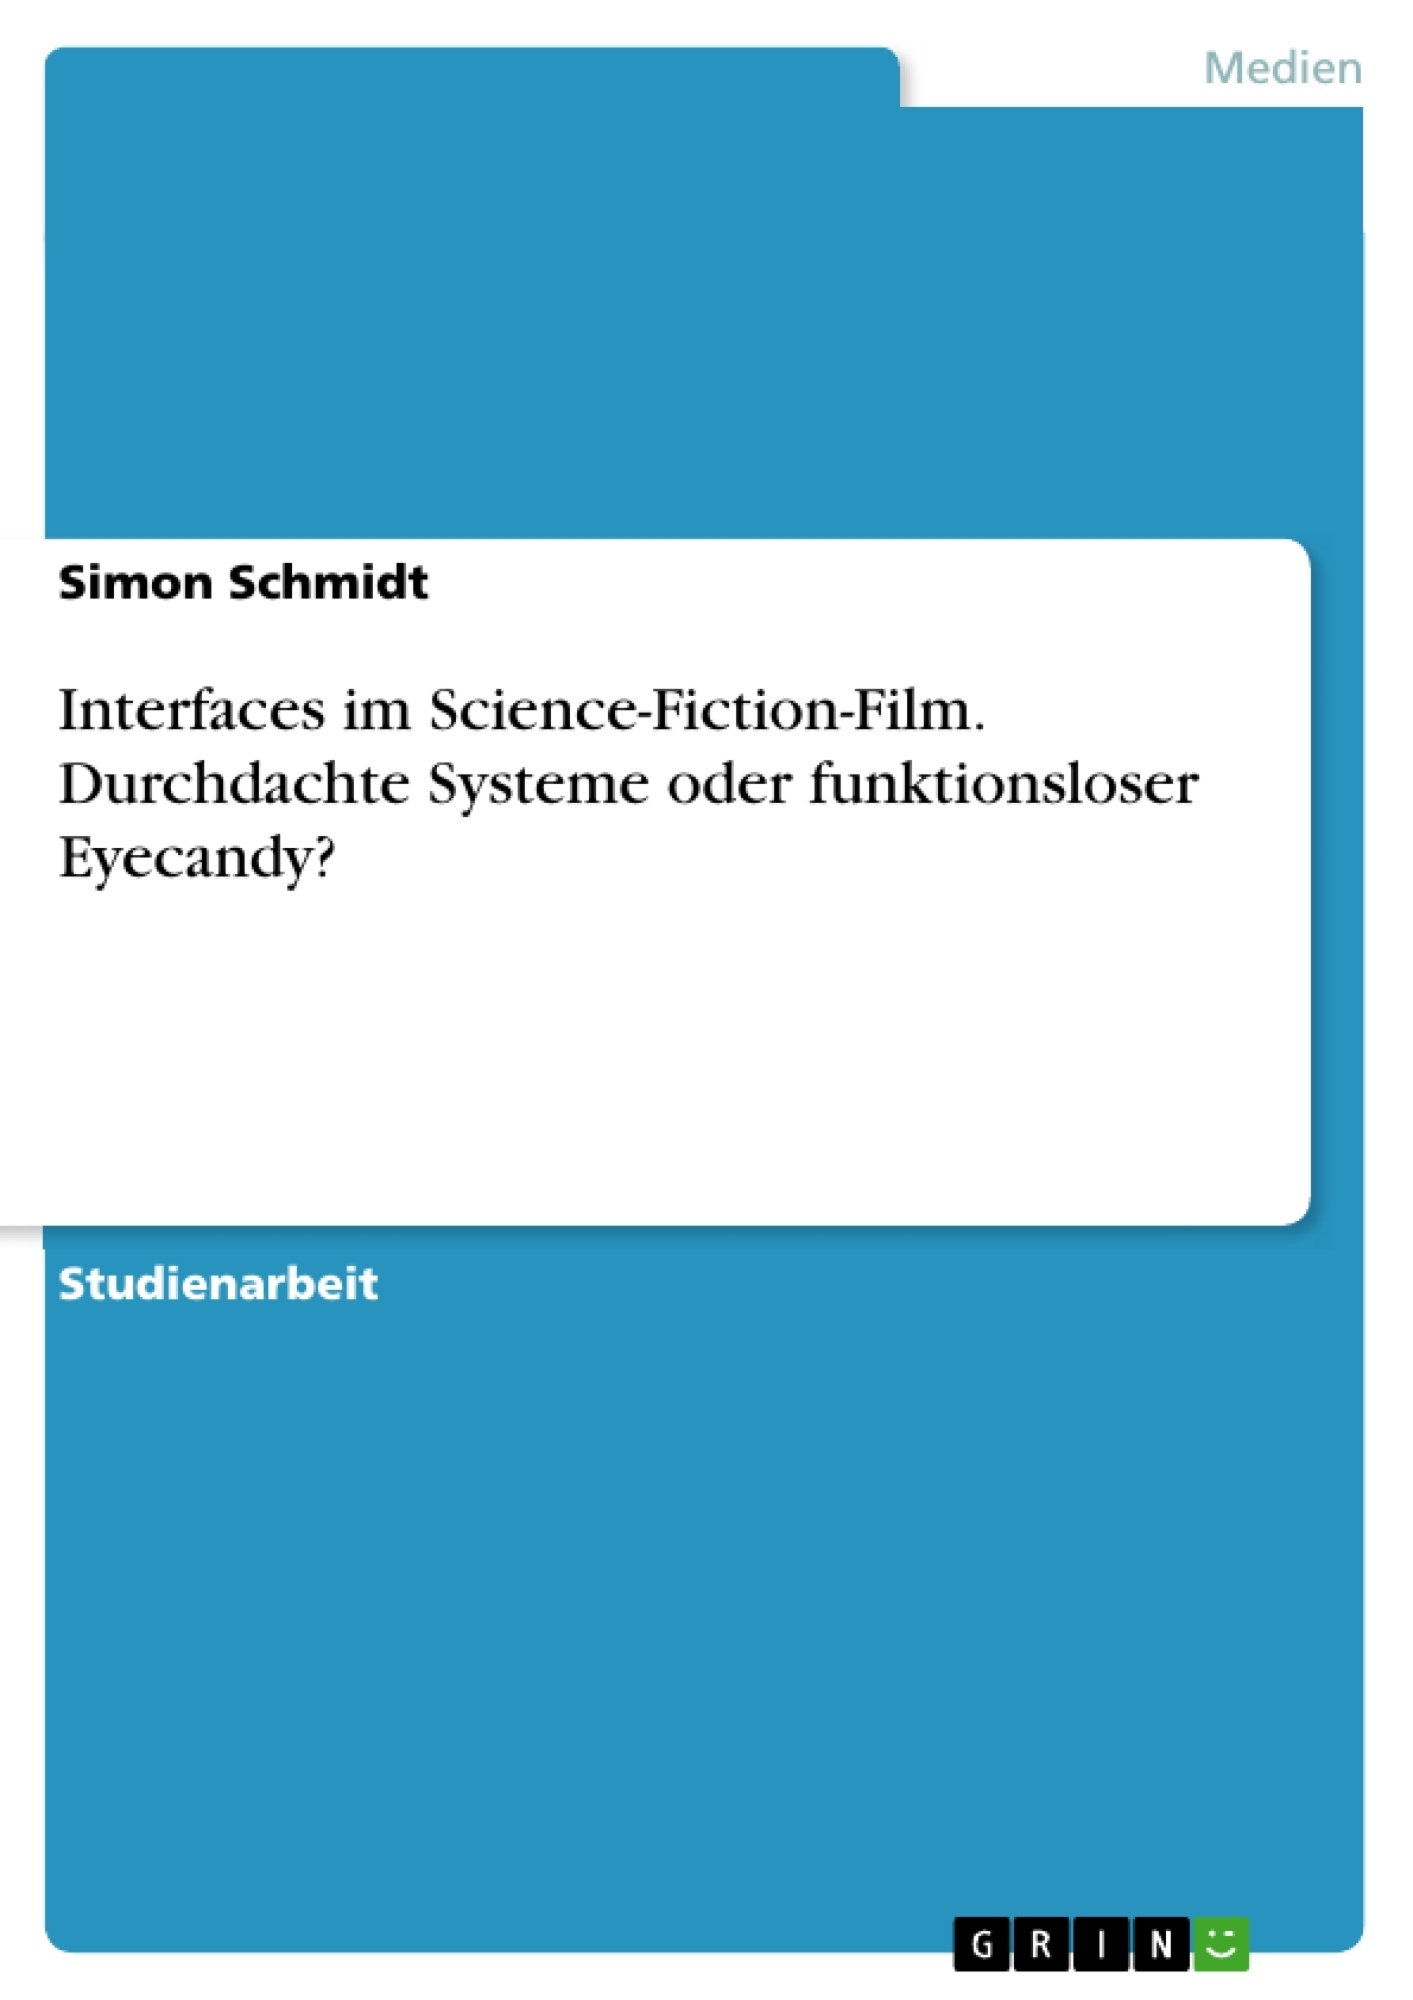 Titel: Interfaces im Science-Fiction-Film. Durchdachte Systeme oder funktionsloser Eyecandy?